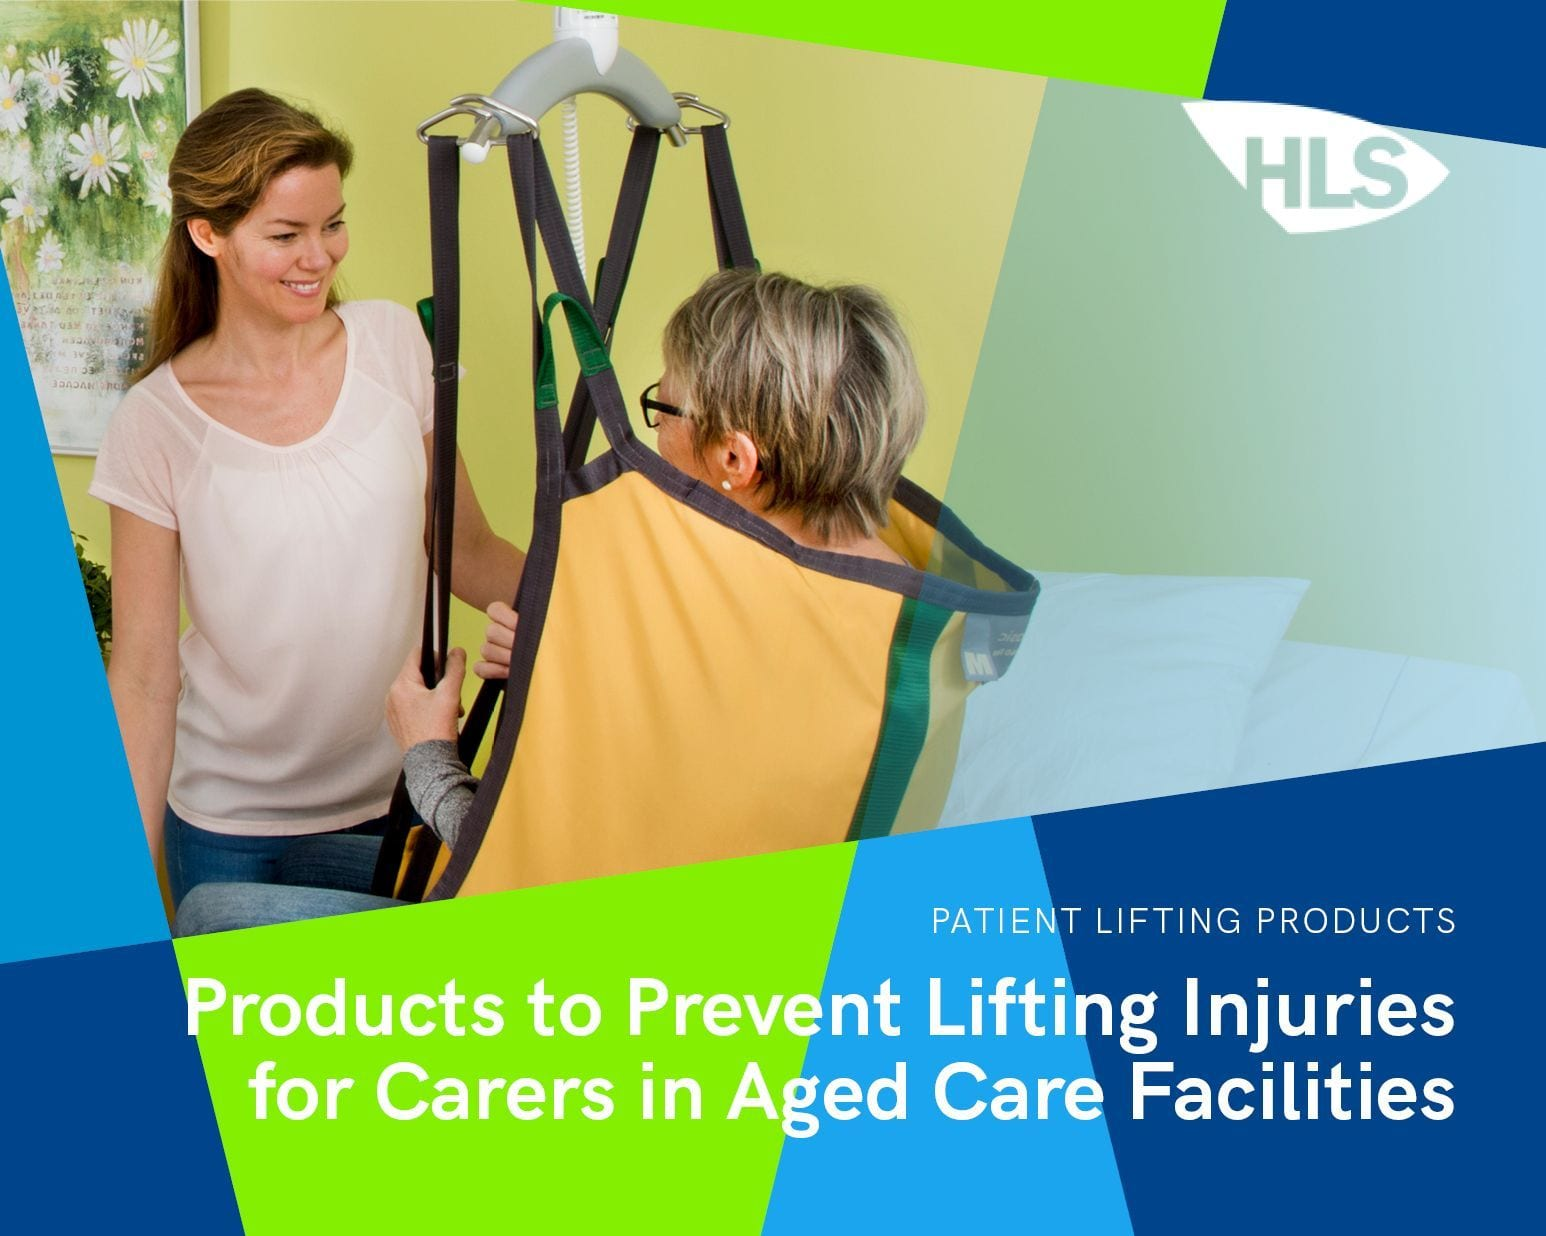 Products to Prevent lifting Injuries for Carers in Aged Care Facilities